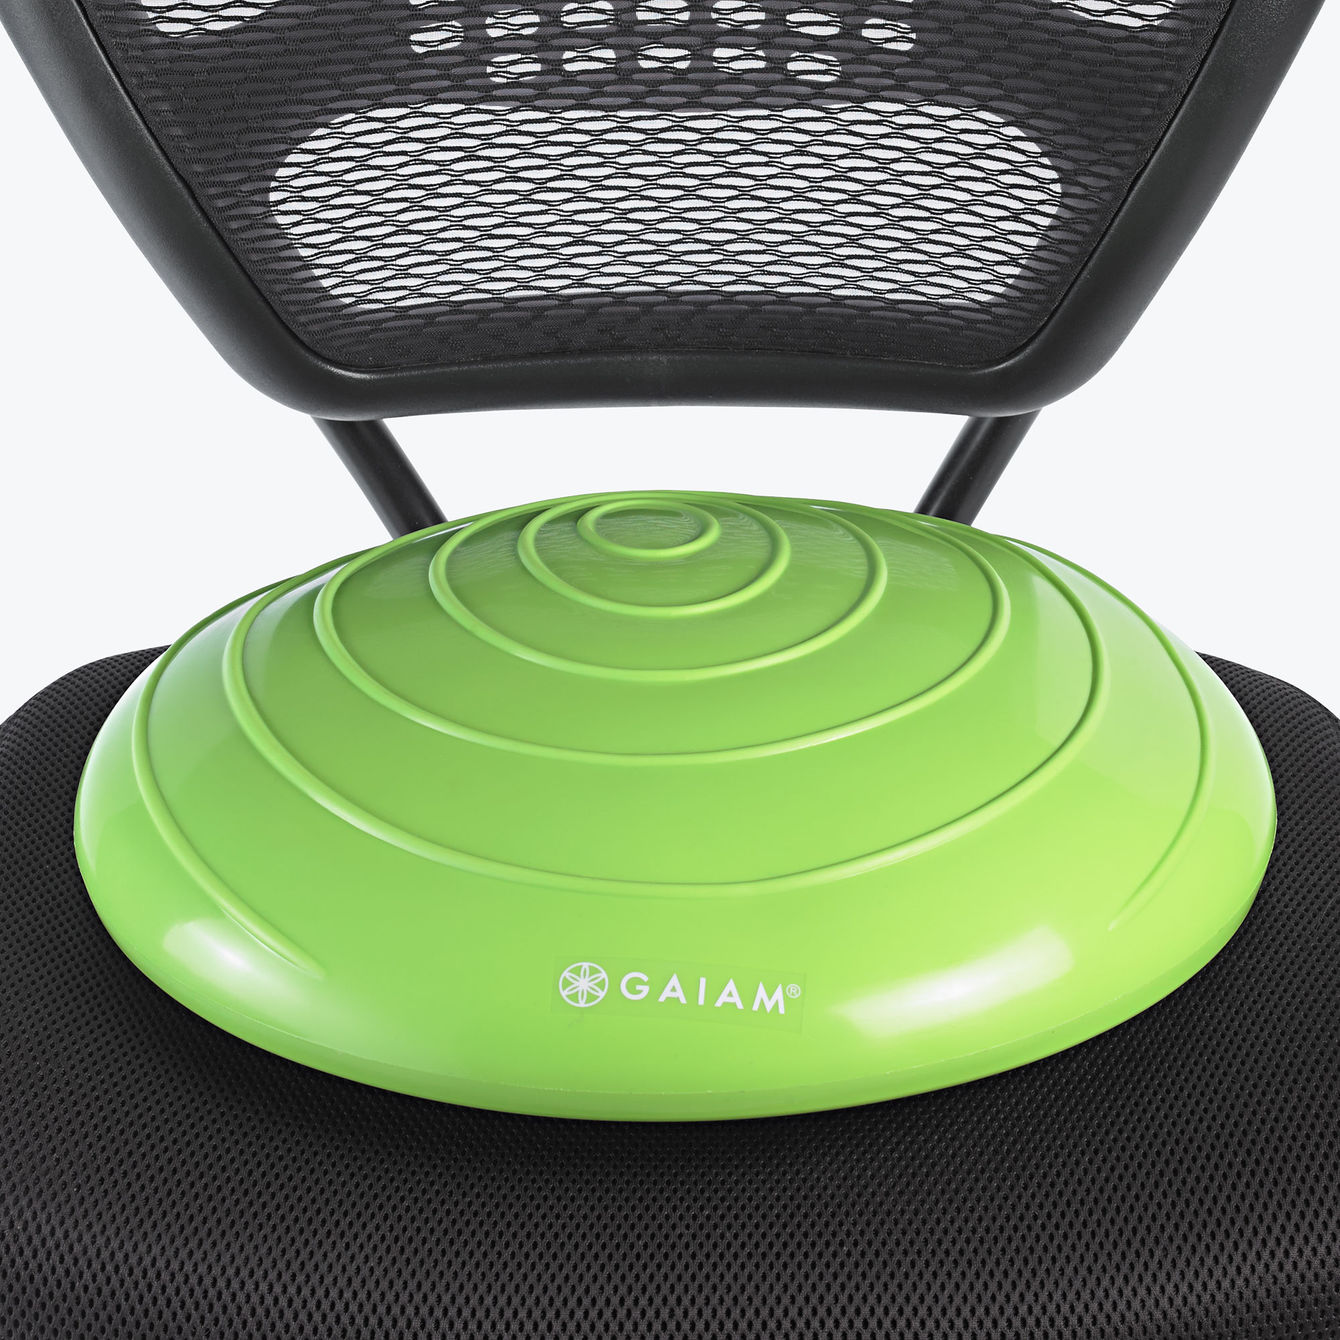 Gaiam Active Sitting Balance Disc